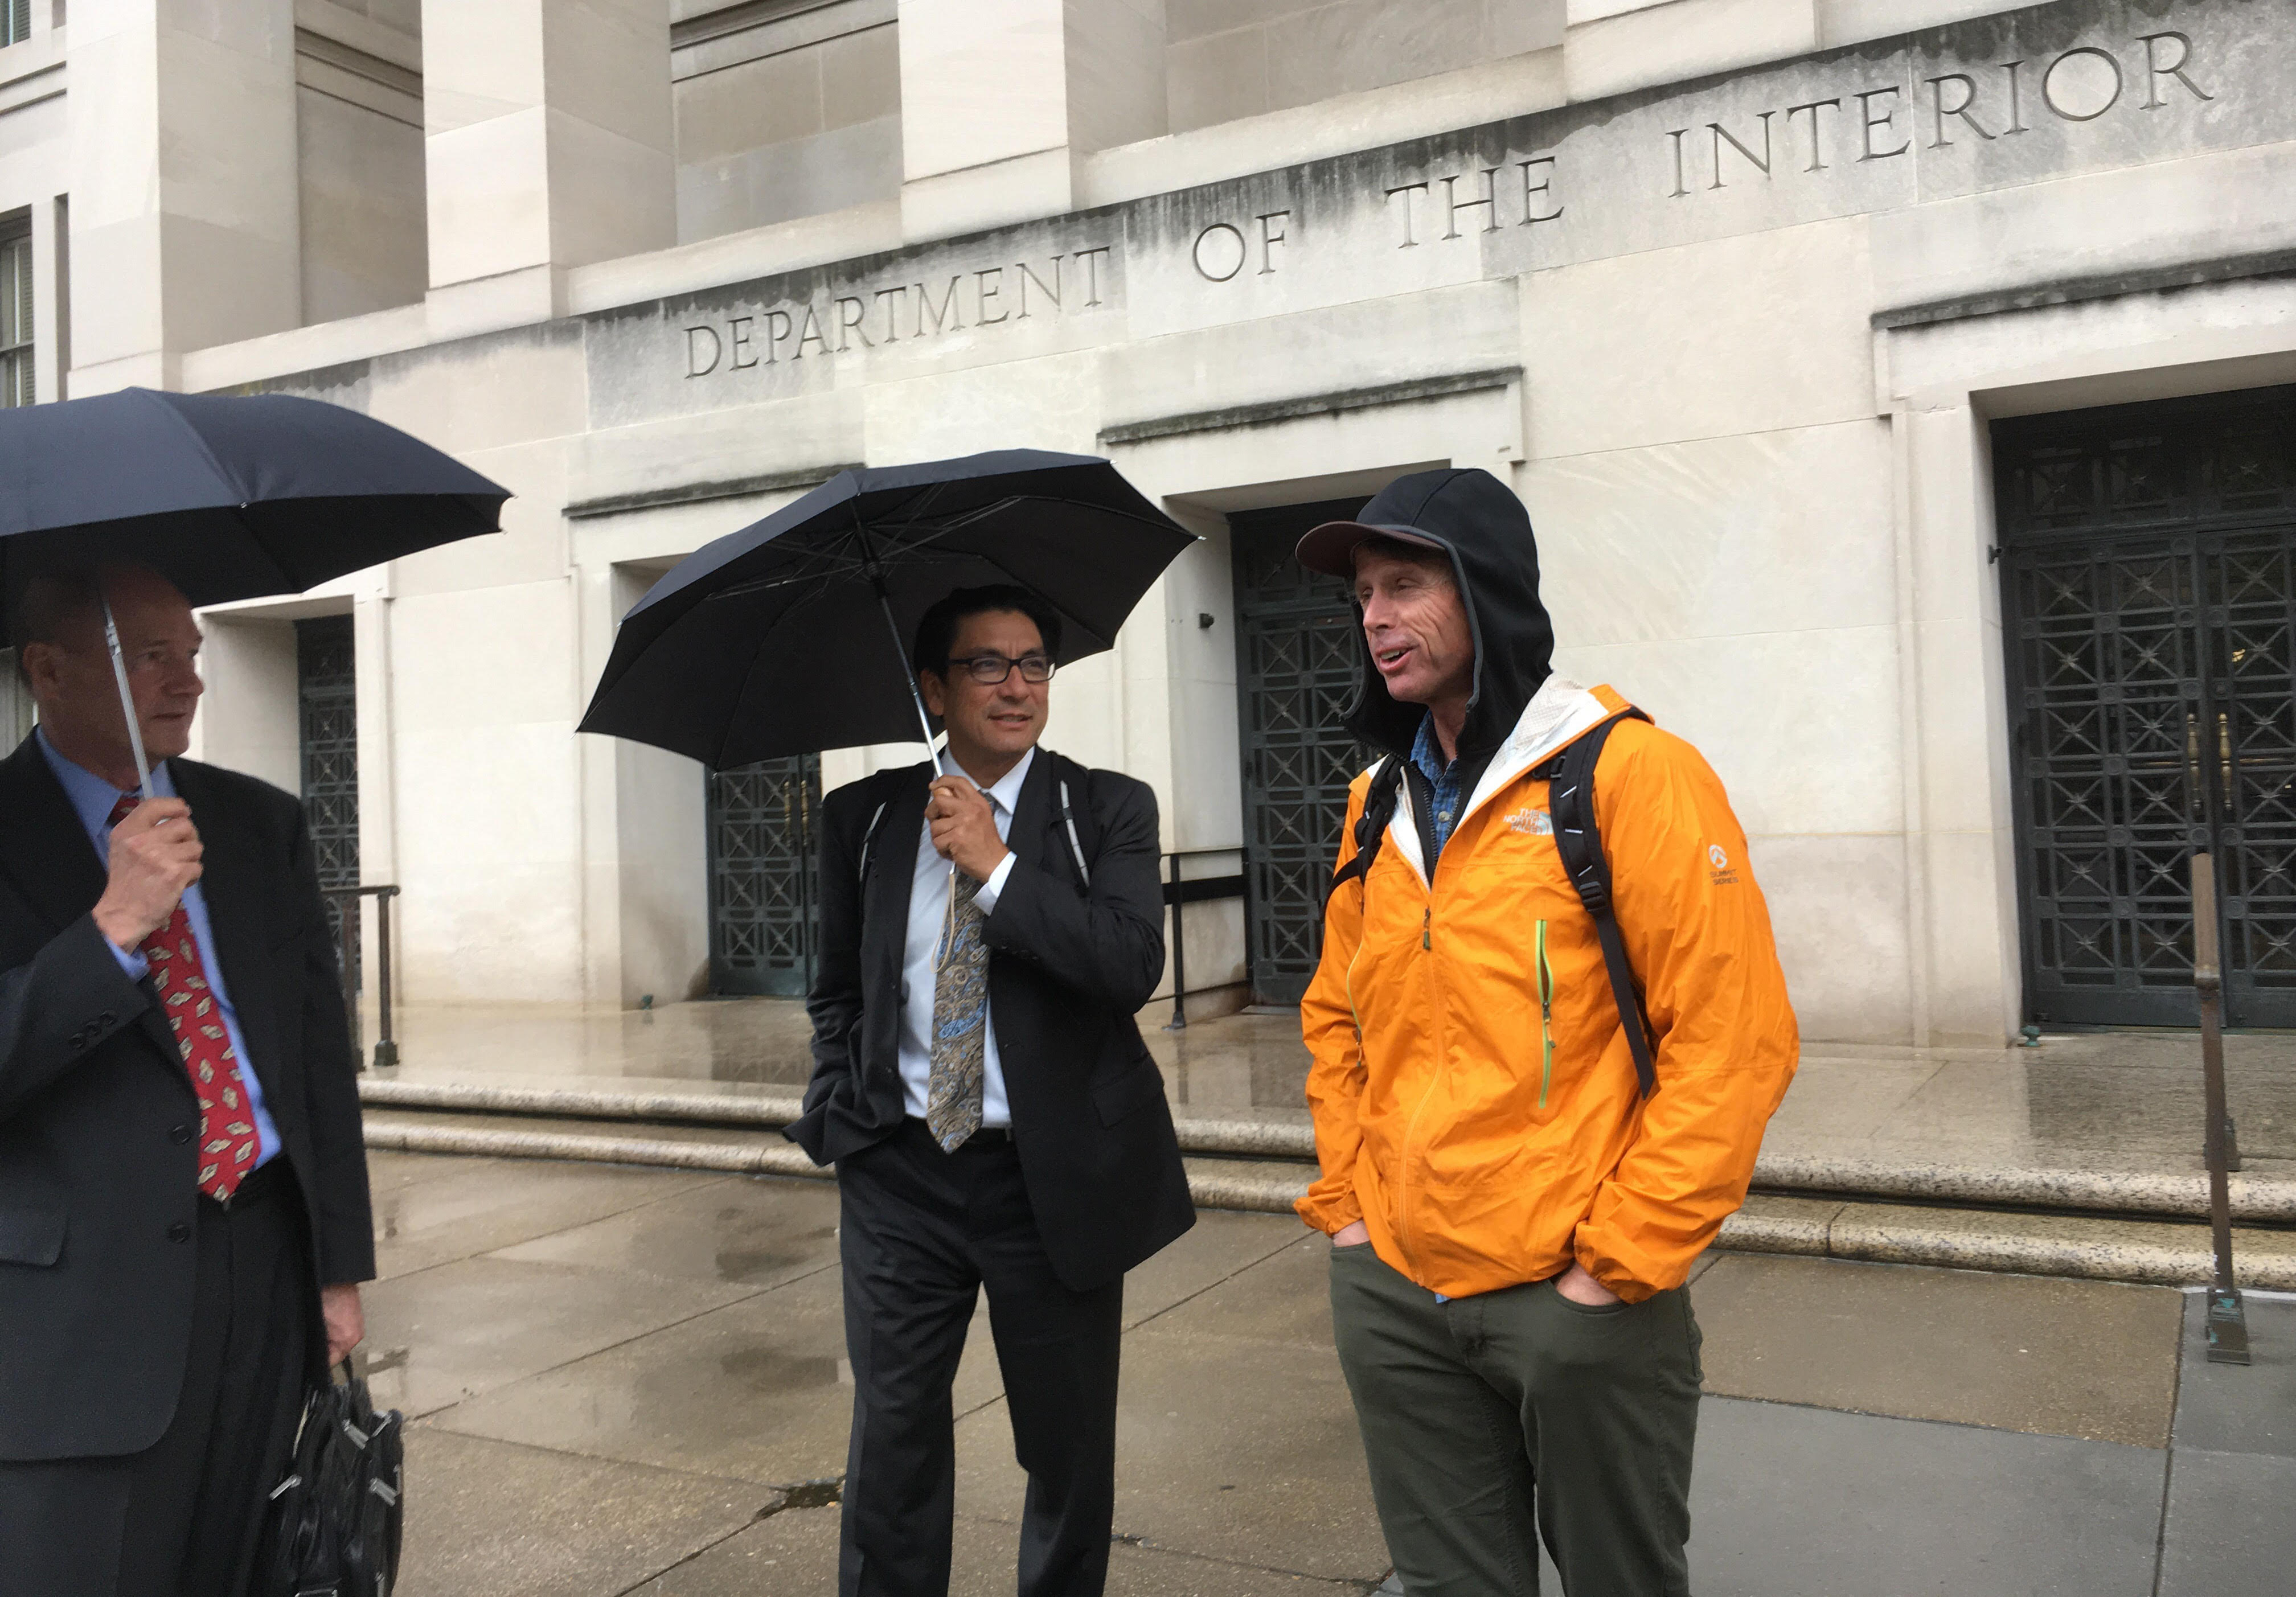 From left, Access Fund representatives Curt Shannon, Kenji Haroutunian and Peter Croft wait for a cab after meetings inside the Department of Interior. [Photo] Derek Franz